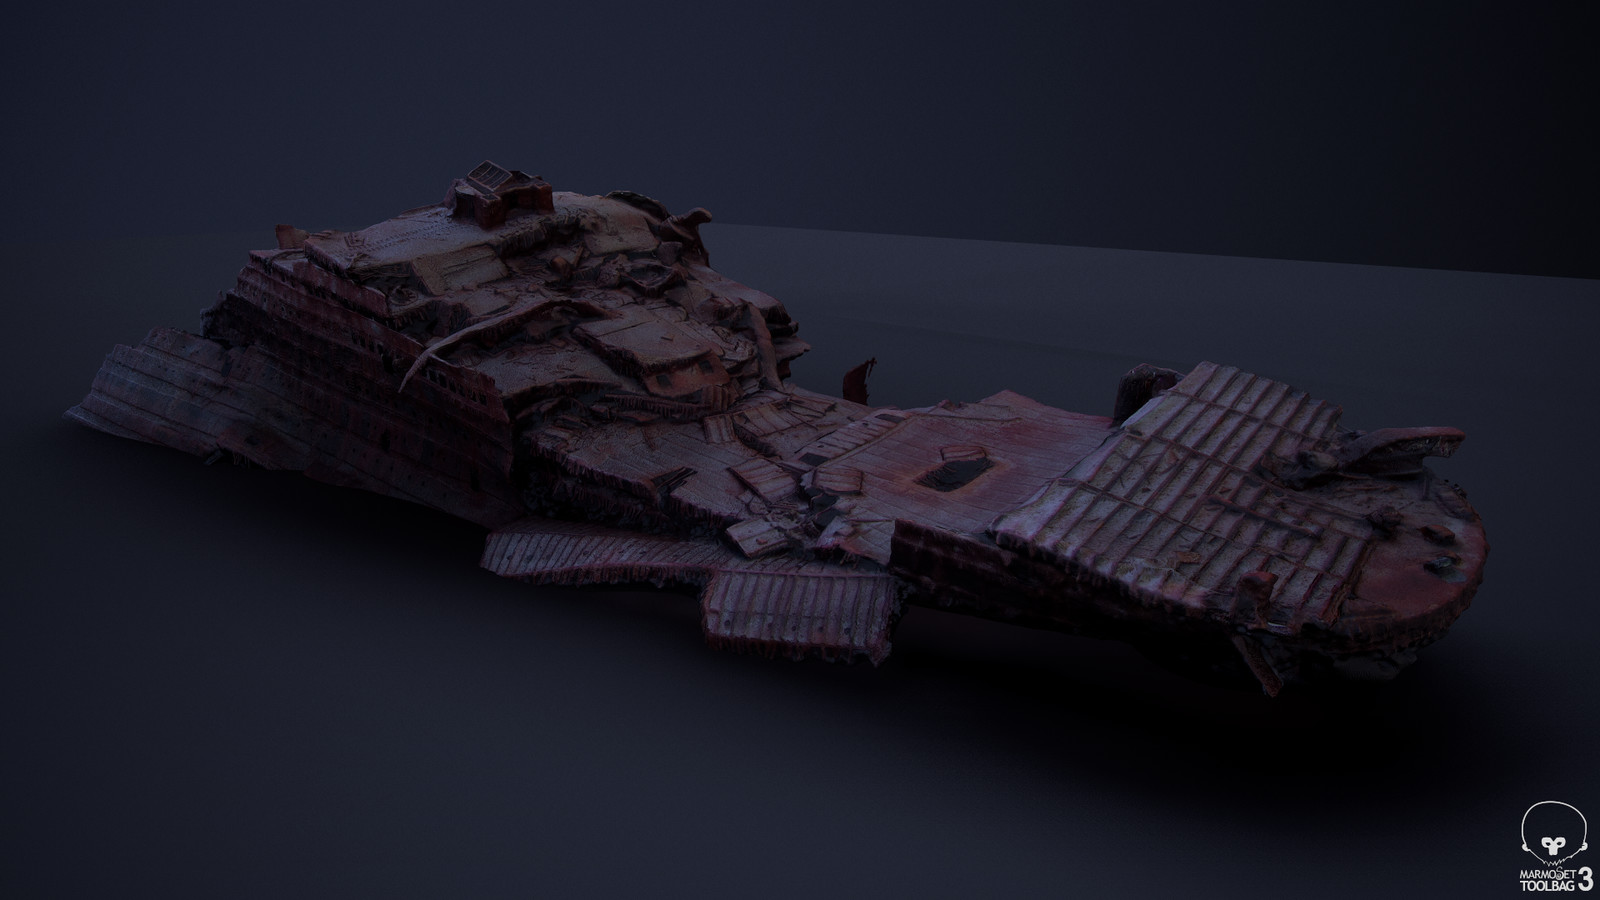 Agisoft Photoscan output geometry, viewed in Marmoset Toolbag 3 (04)